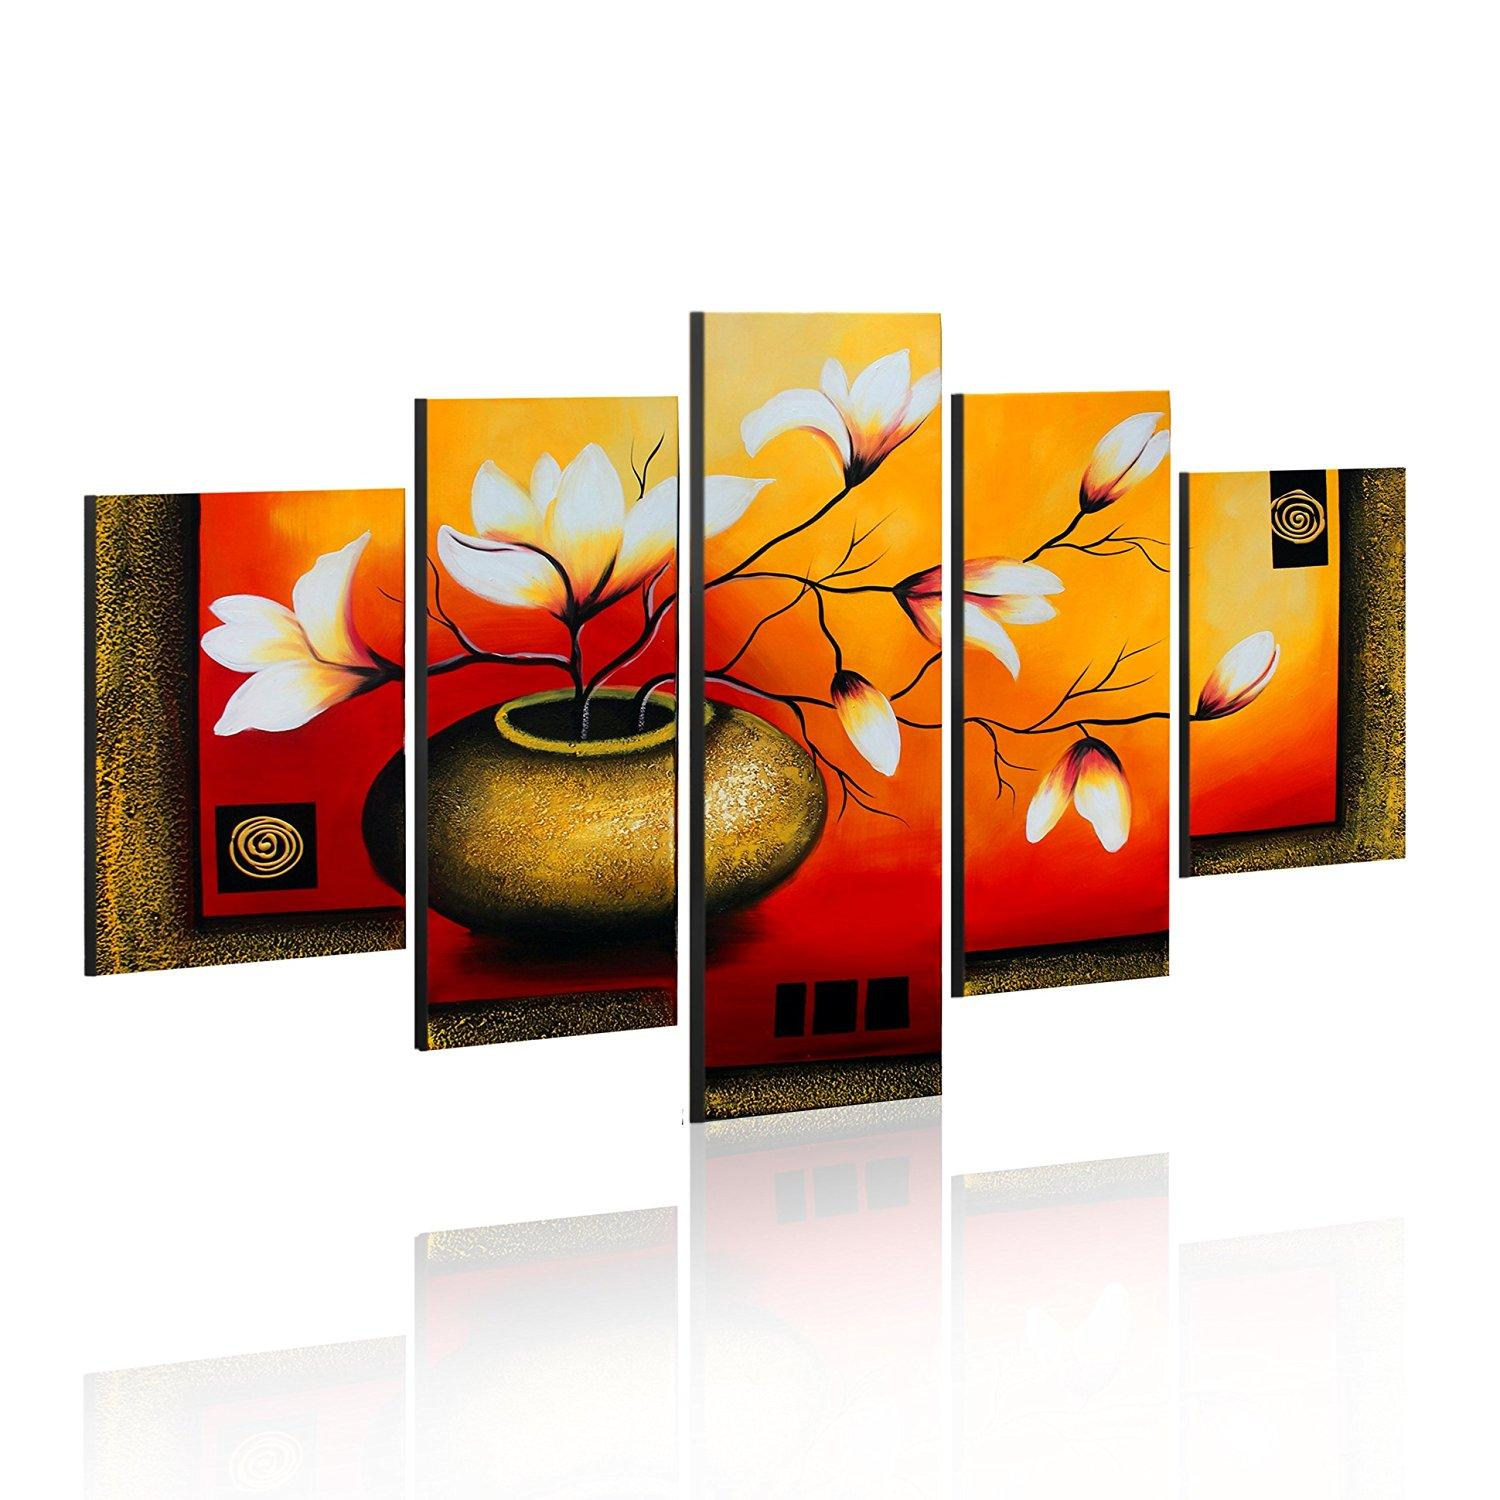 Wall art flower painting - Elegant Lily Flower Painting Wall Art Decor Framed Hand Painted Floral Oil Painting Ready To Hang Canvas Wall Art Flower Painting Decor Floral Art Online